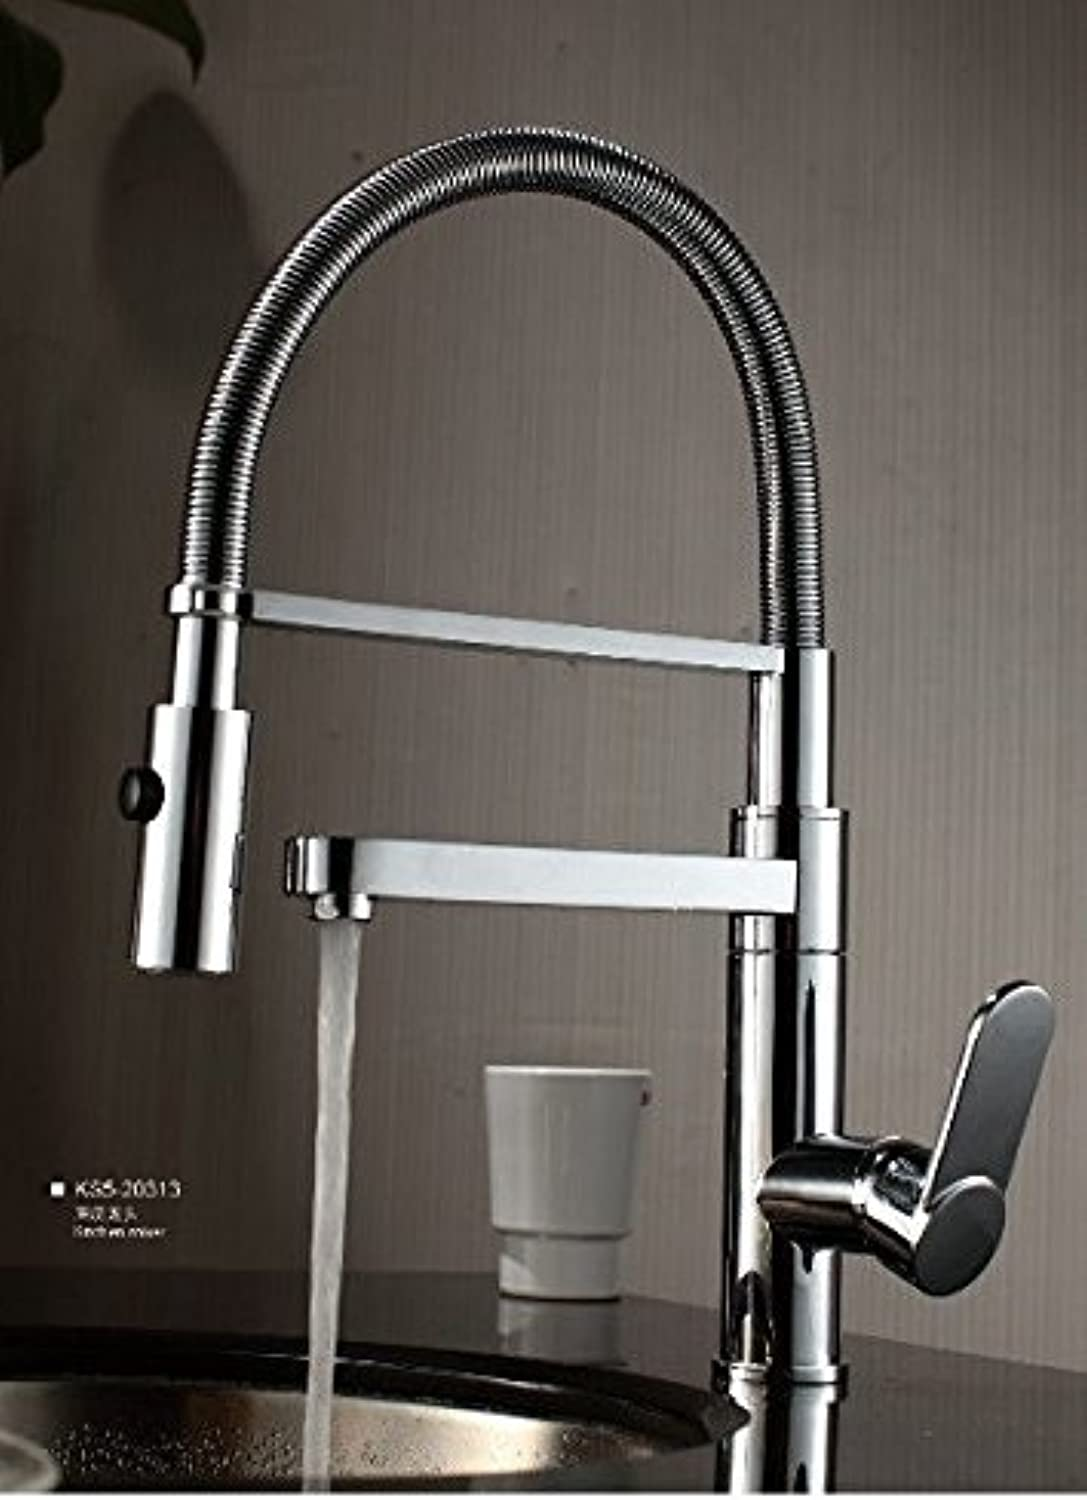 ETERNAL QUALITY Bathroom Sink Basin Tap Brass Mixer Tap Washroom Mixer Faucet Kitchen faucet to turn full-copper-water taps A Kitchen Sink Taps